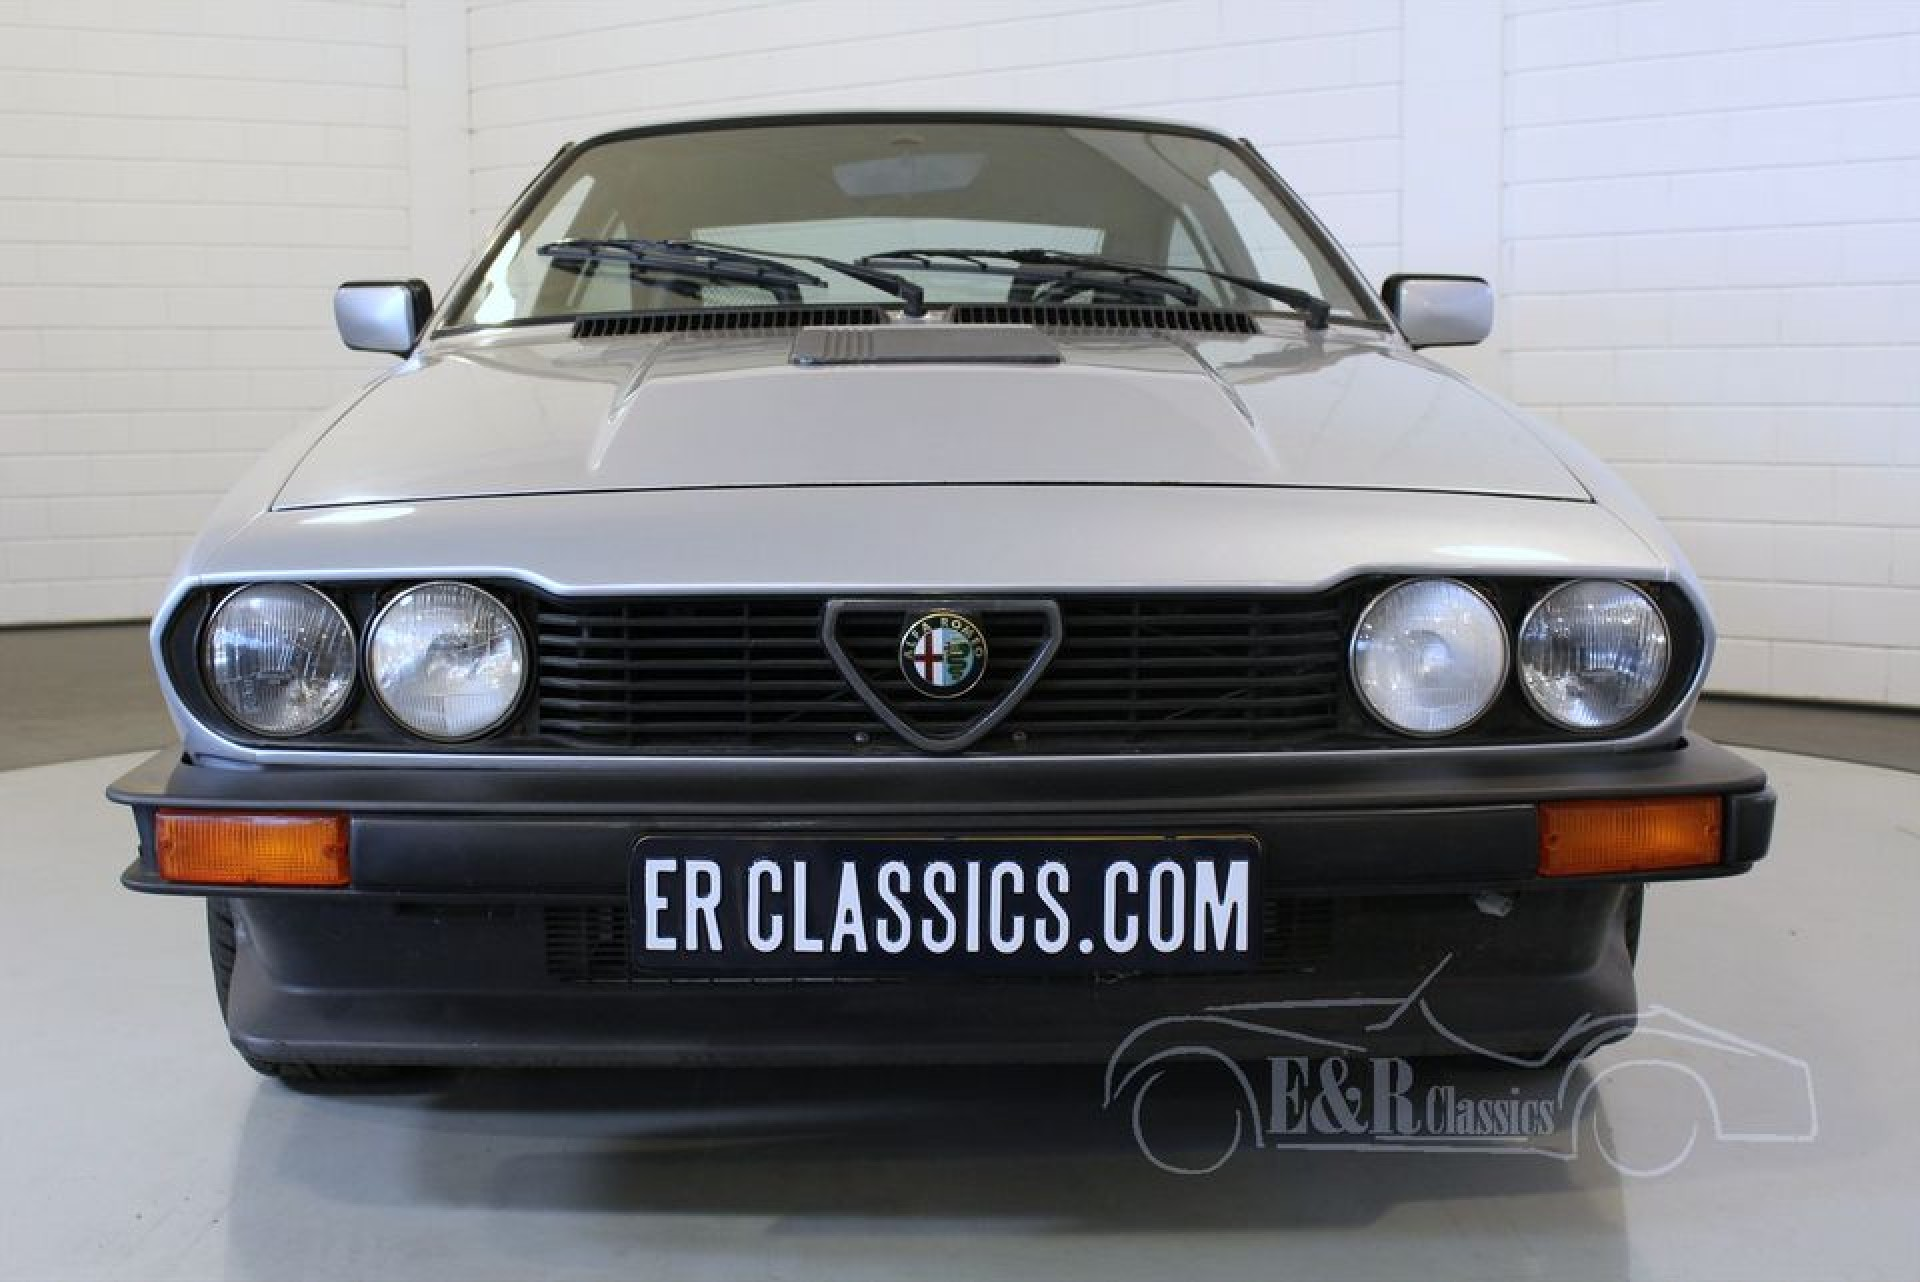 alfa romeo gtv6 savali 1985 vendre erclassics. Black Bedroom Furniture Sets. Home Design Ideas